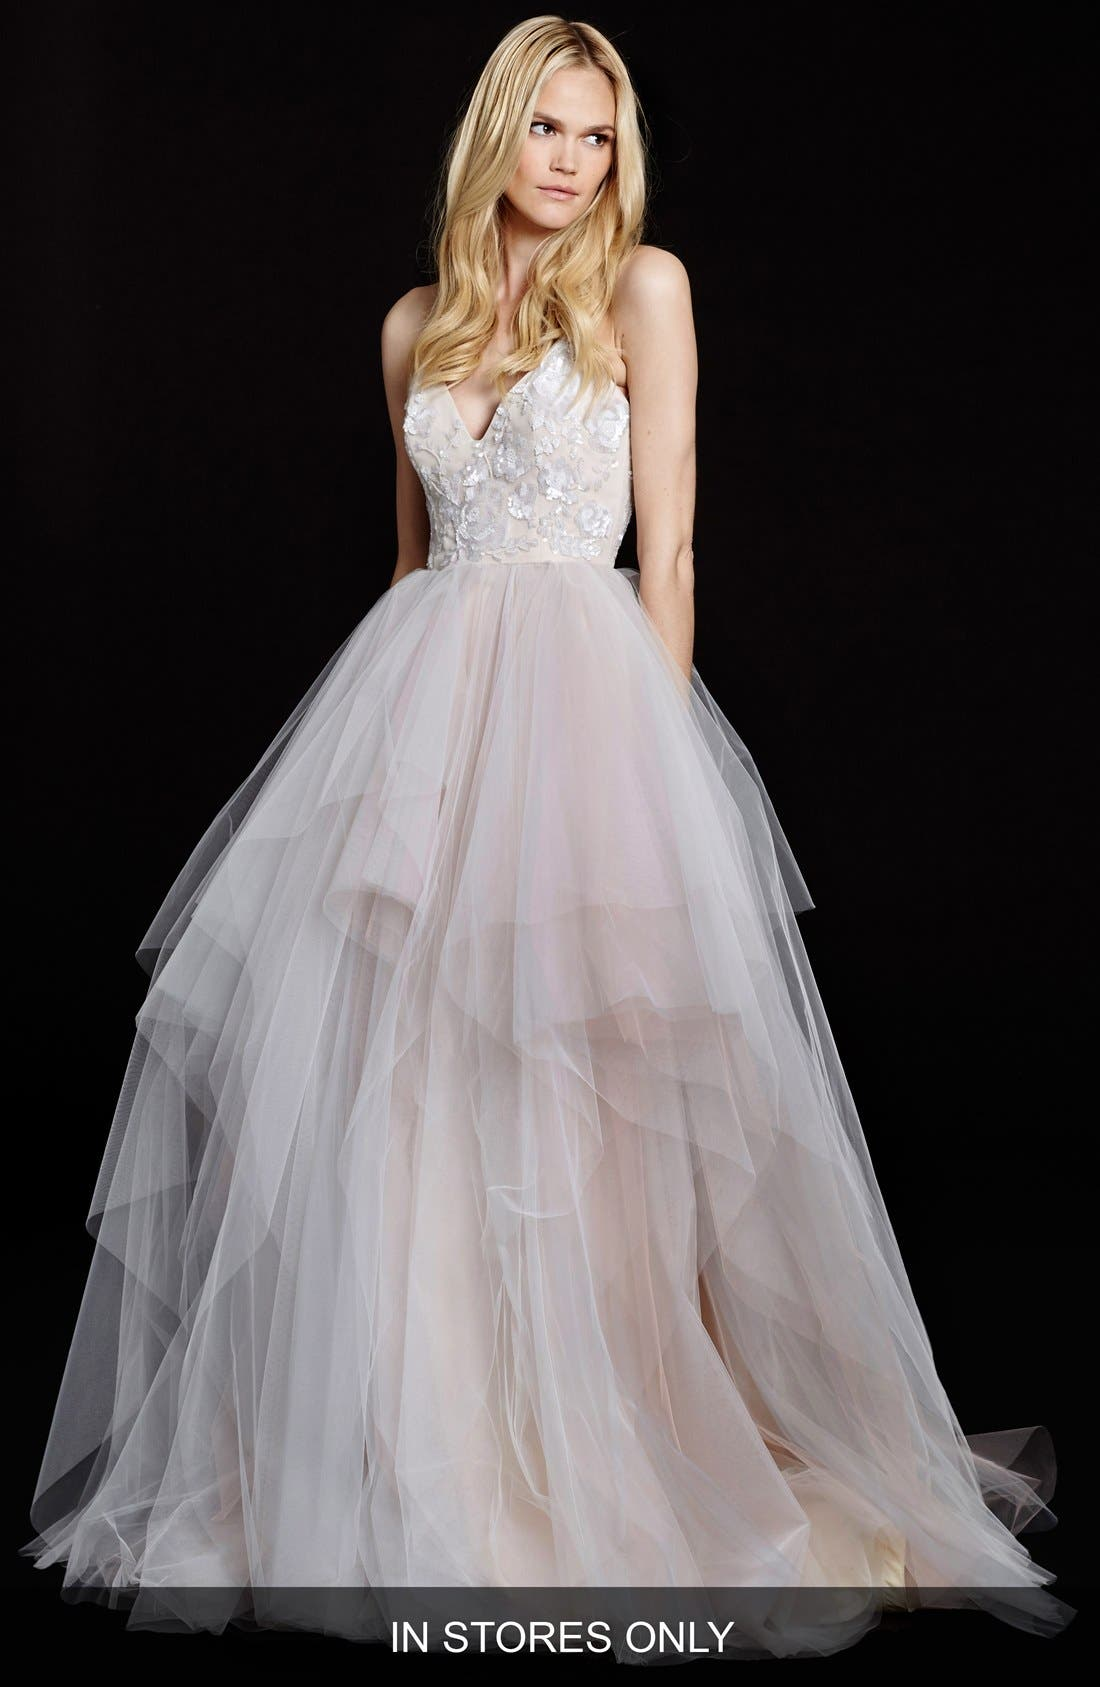 Hayley Paige 'Nicoletta' Floral Sequin Bodice Tiered Tulle Gown (In Stores Only)